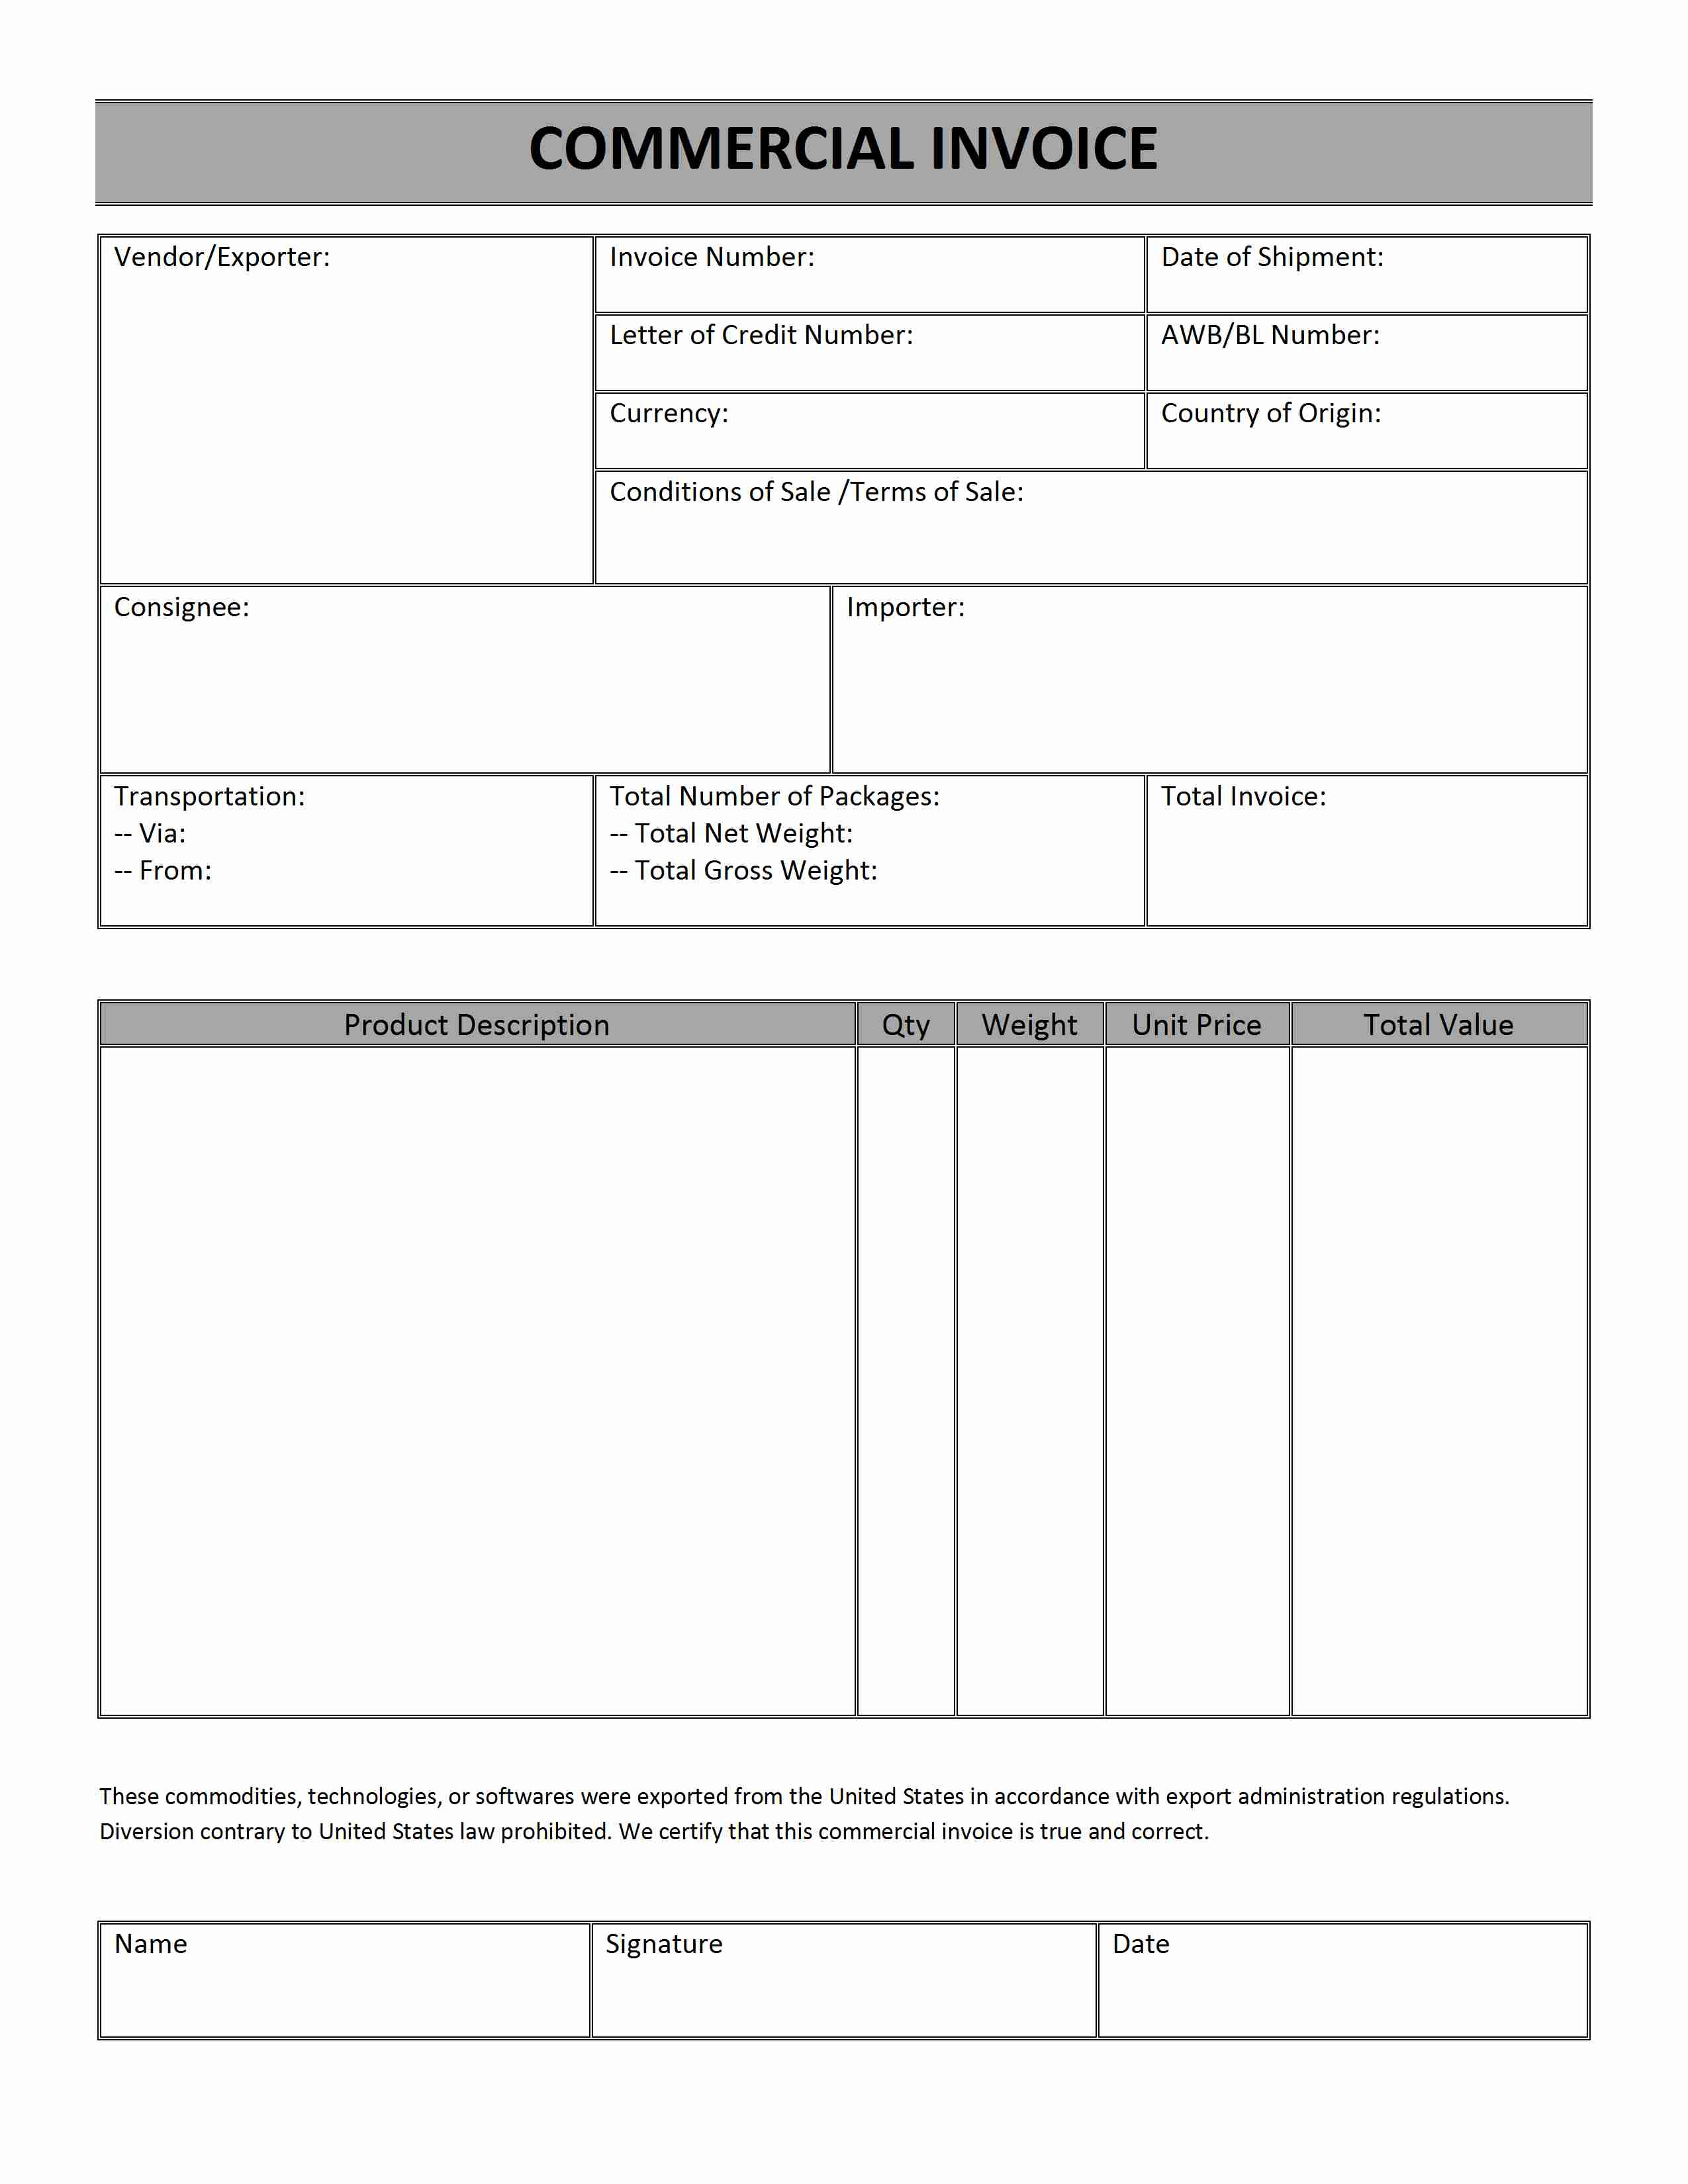 Coolmathgamesus  Unusual Printable Sales Invoice Simple Invoice Form Free Invoice  With Licious Printable Receipt Free  Free Printable Raffle Tickets  Receipt   Printable With Alluring How To Invoice Someone Also Invoice Maker Pro In Addition Lexis Power Invoice And Whats A Invoice As Well As Consulting Invoice Additionally Invoice Books From Happytomco With Coolmathgamesus  Licious Printable Sales Invoice Simple Invoice Form Free Invoice  With Alluring Printable Receipt Free  Free Printable Raffle Tickets  Receipt   Printable And Unusual How To Invoice Someone Also Invoice Maker Pro In Addition Lexis Power Invoice From Happytomco